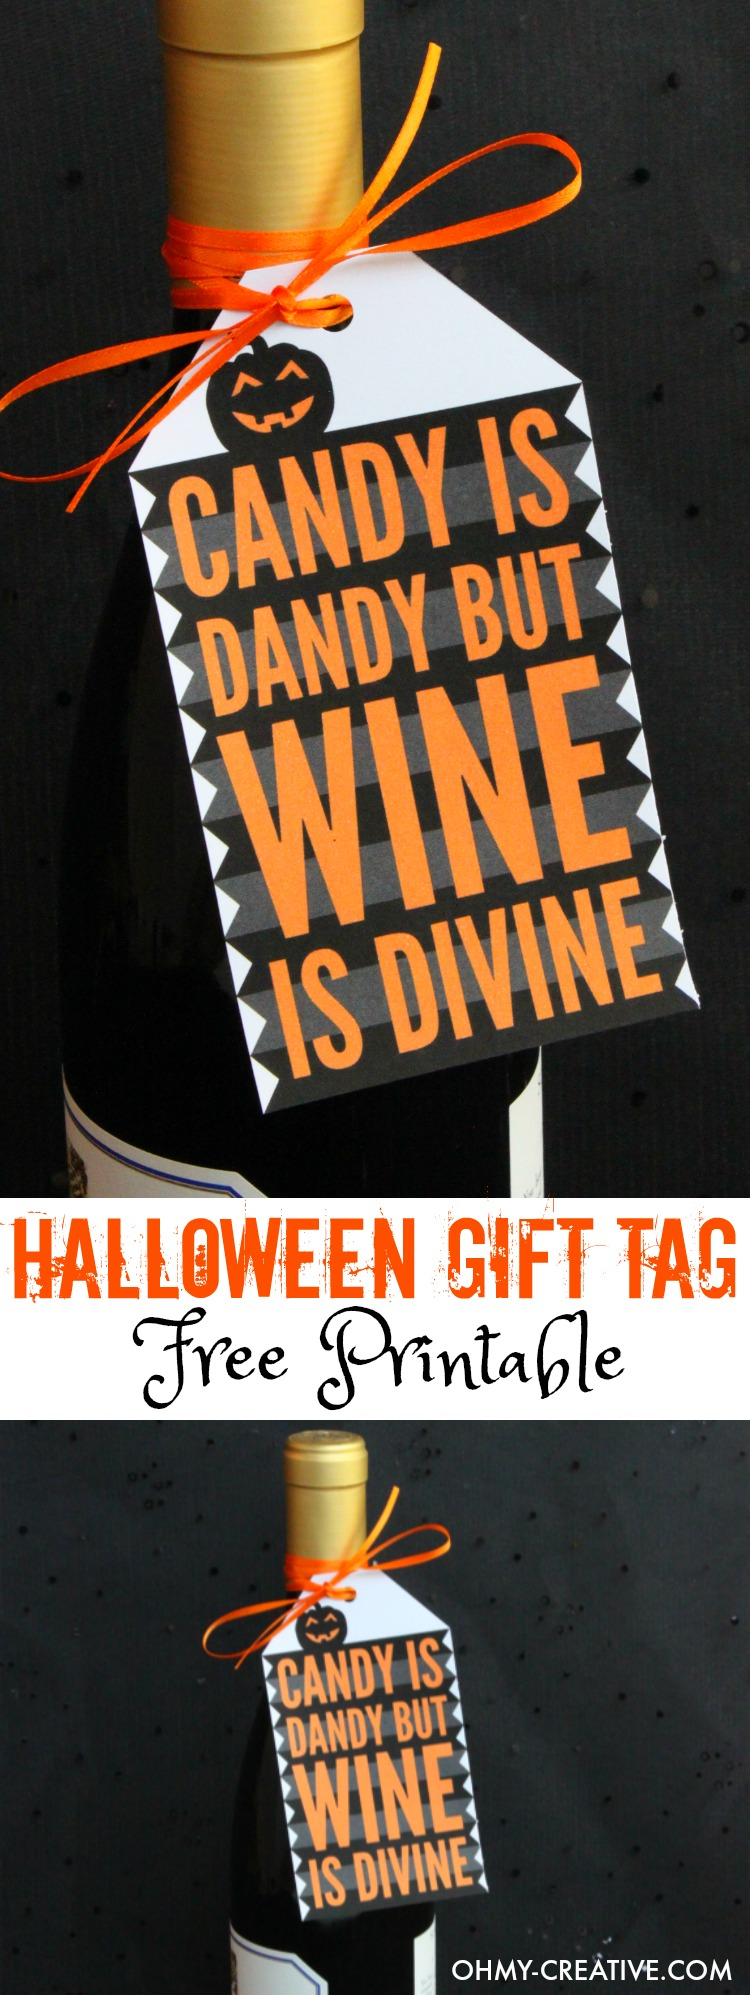 Print out this Halloween Gift Tag Free Printable for your Halloween Party Hostess gift! Great for wine lovers! Cute Halloween phrase - Candy is Dandy but wine is Divine!   OHMY-CREATIVE.COM